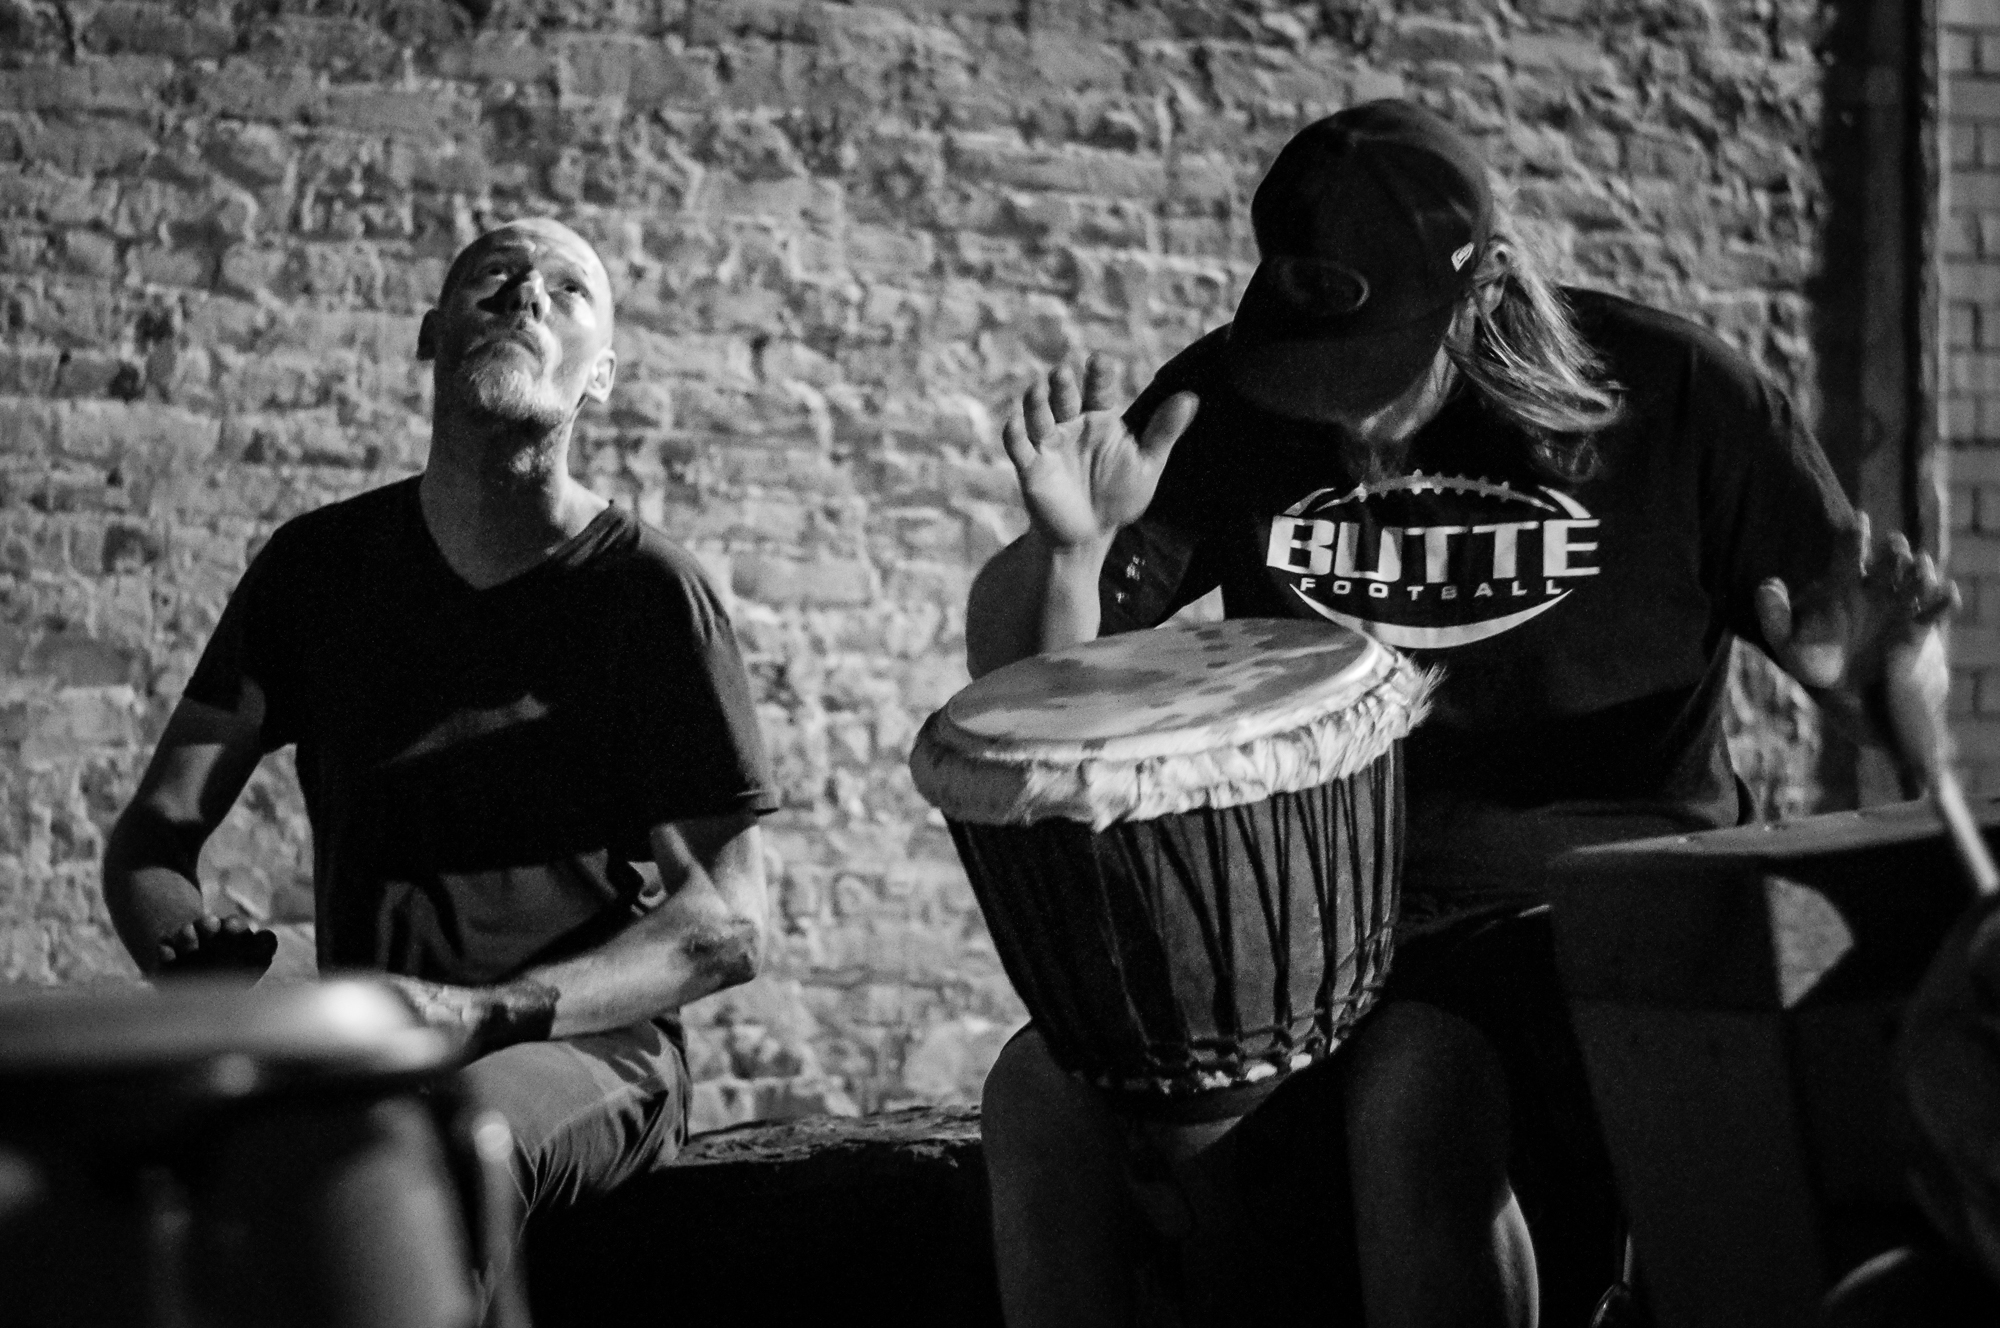 Rhythm & Relationships  Drum Circle culture in a small town in North Texas.